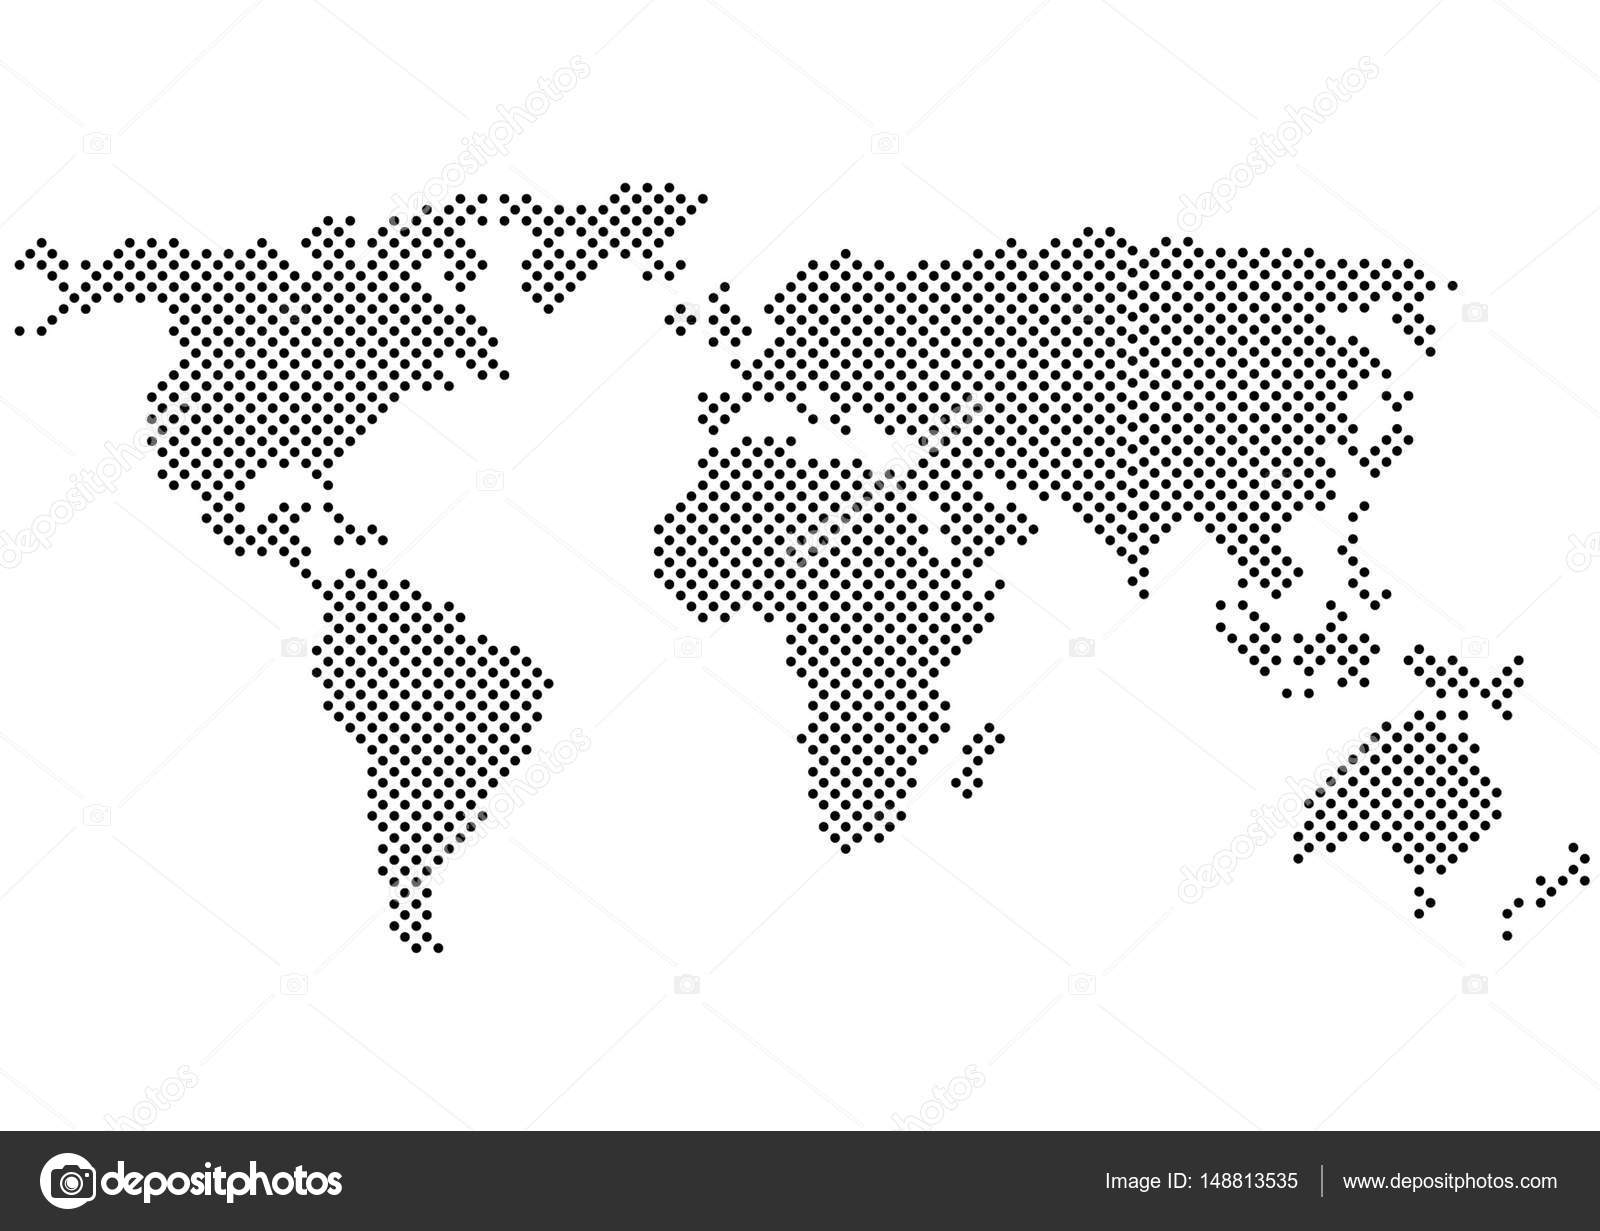 Black white vector polka dots map silhouette color halftone world black and white vector polka dots map silhouette color halftone world map vector by pizla09 gumiabroncs Image collections